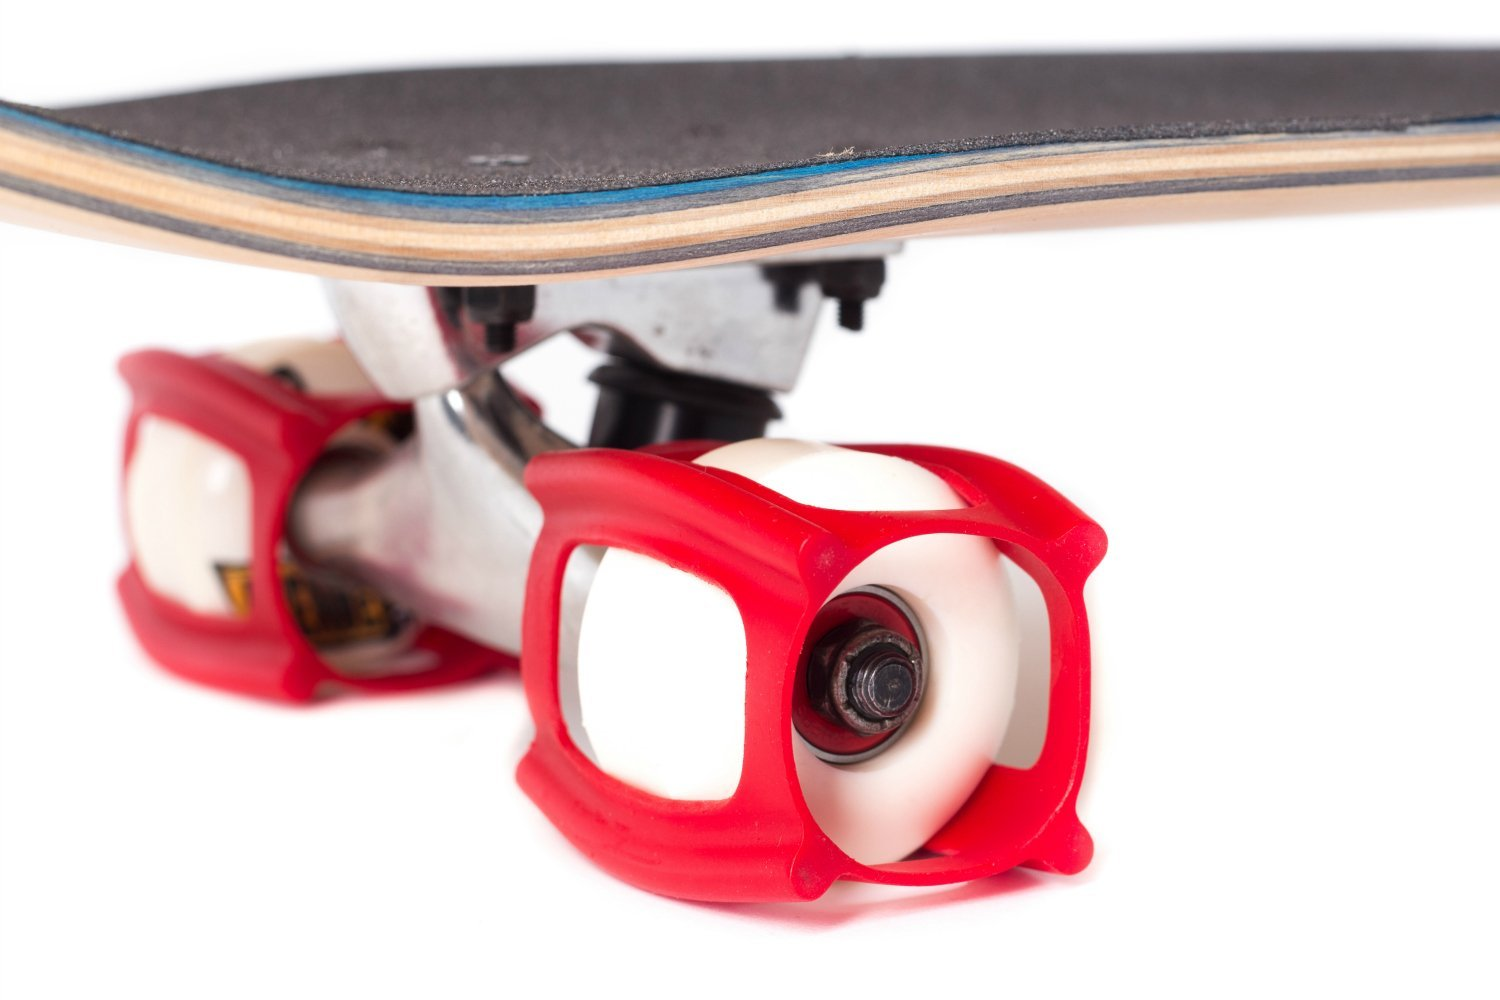 SkaterTrainer 2.0, The Rubber Skateboarding Accessory for Perfecting Your Ollie and Kickflip - Learn, Practice and Land Tricks in No Time! (Red) by SkaterTrainer